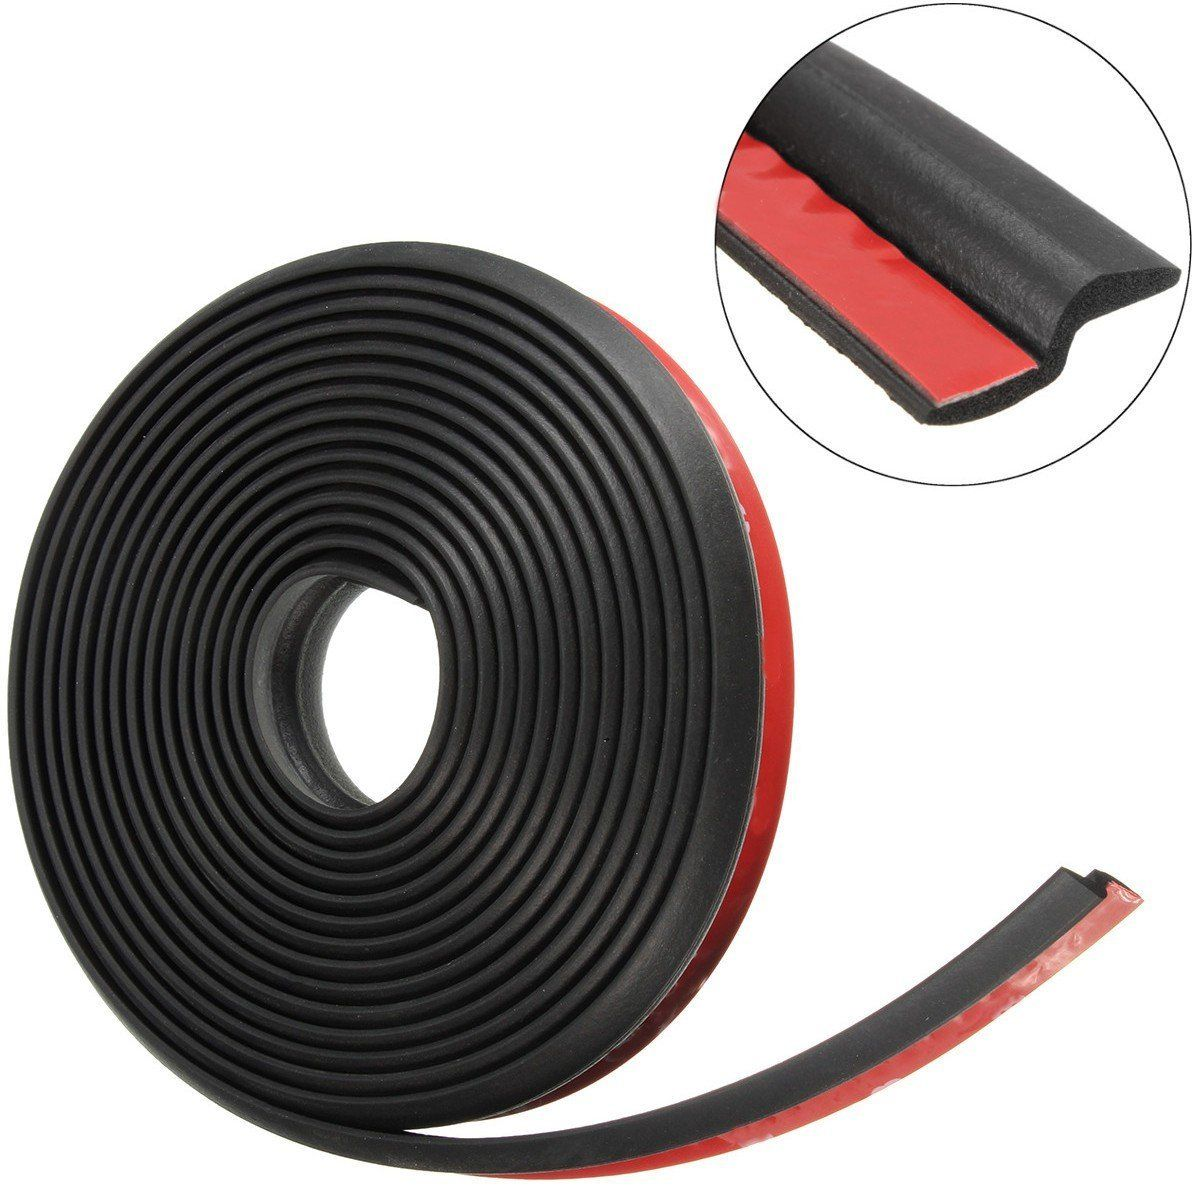 medium resolution of  rubber profiles bulb trim seals automotive weather strips and seals door belt moldings pvc moldings wiring harness rubber grommets custom extruded